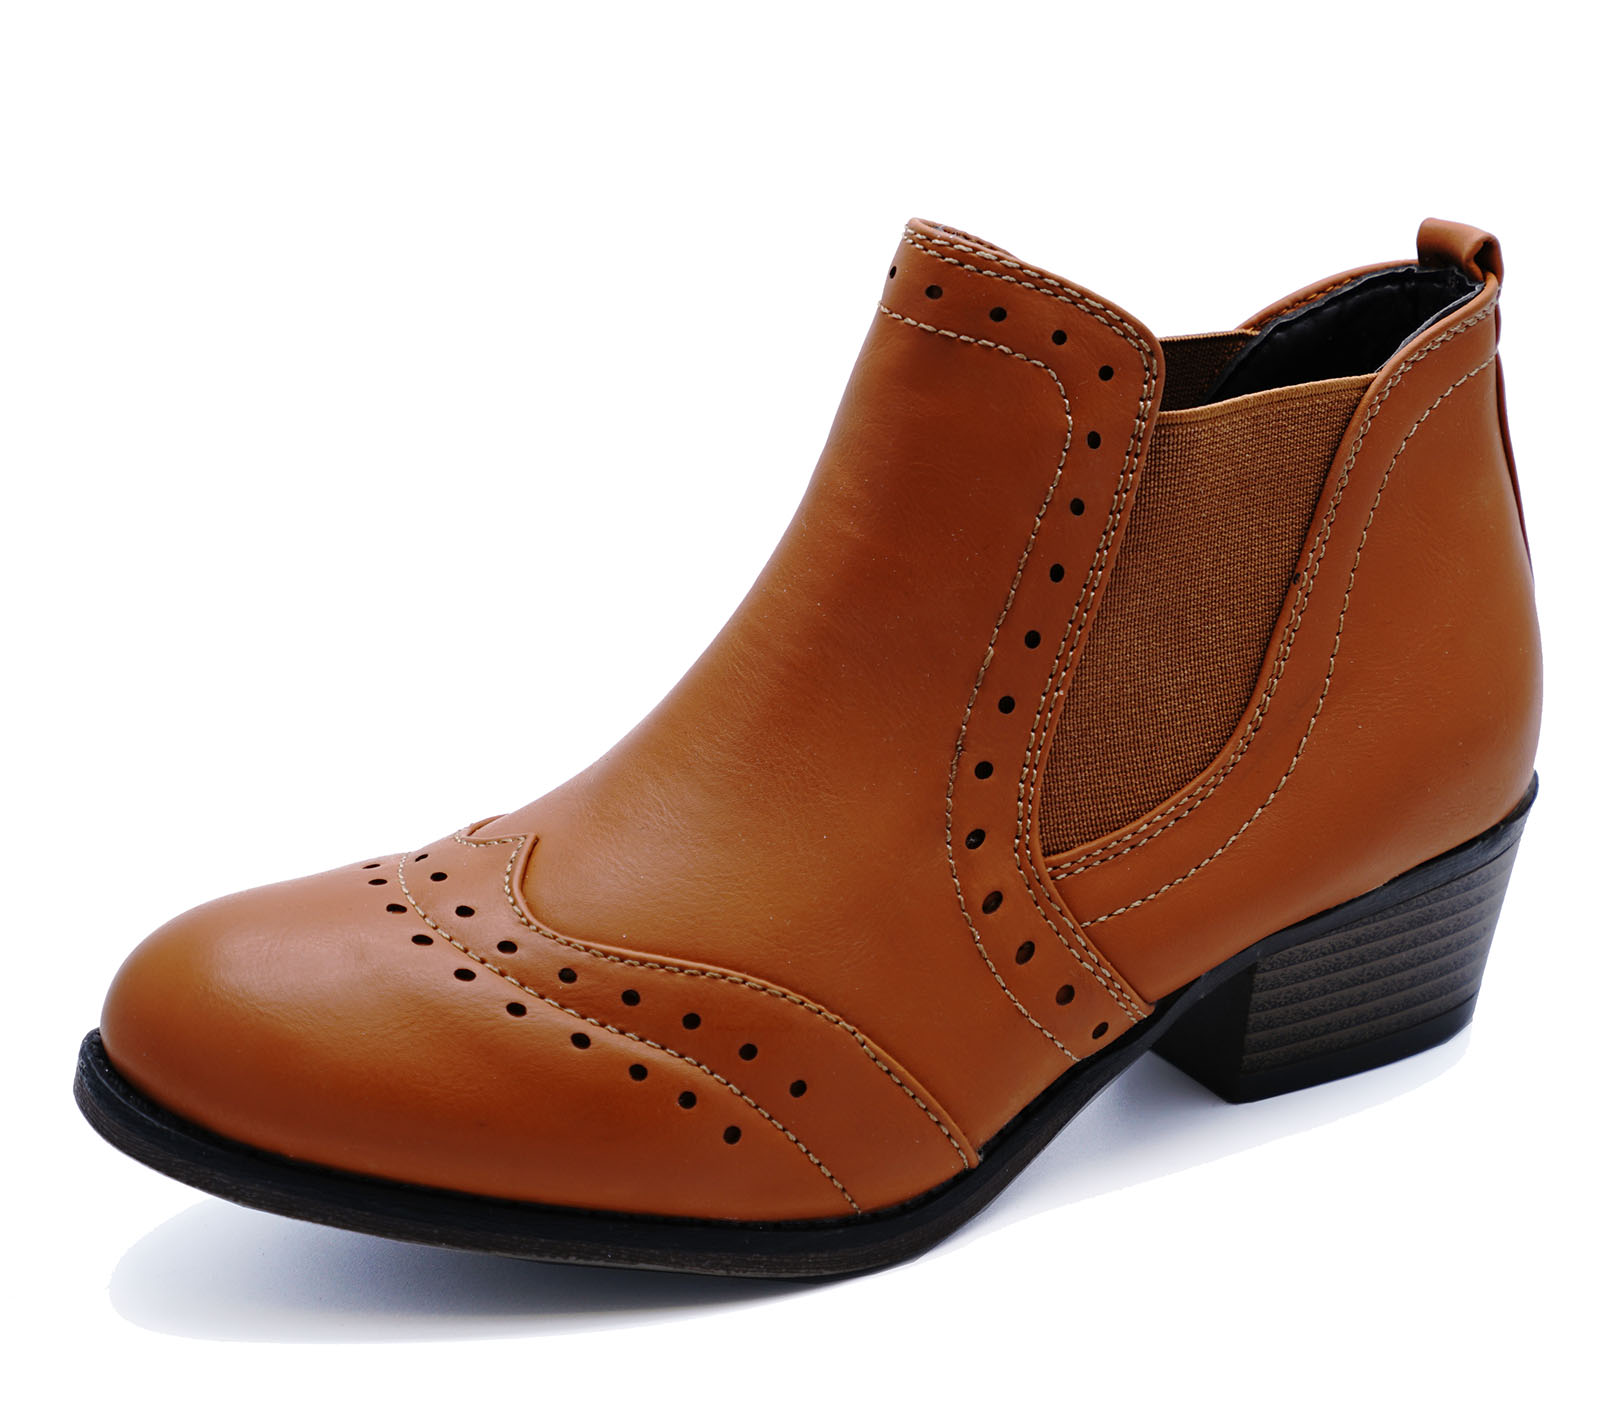 Tan Beige Womens Ankle Boots Sale: Save Up to 80% Off! Shop coolzloadwok.ga's huge selection of Tan Beige Ankle Boots for Women - Over styles available. FREE .